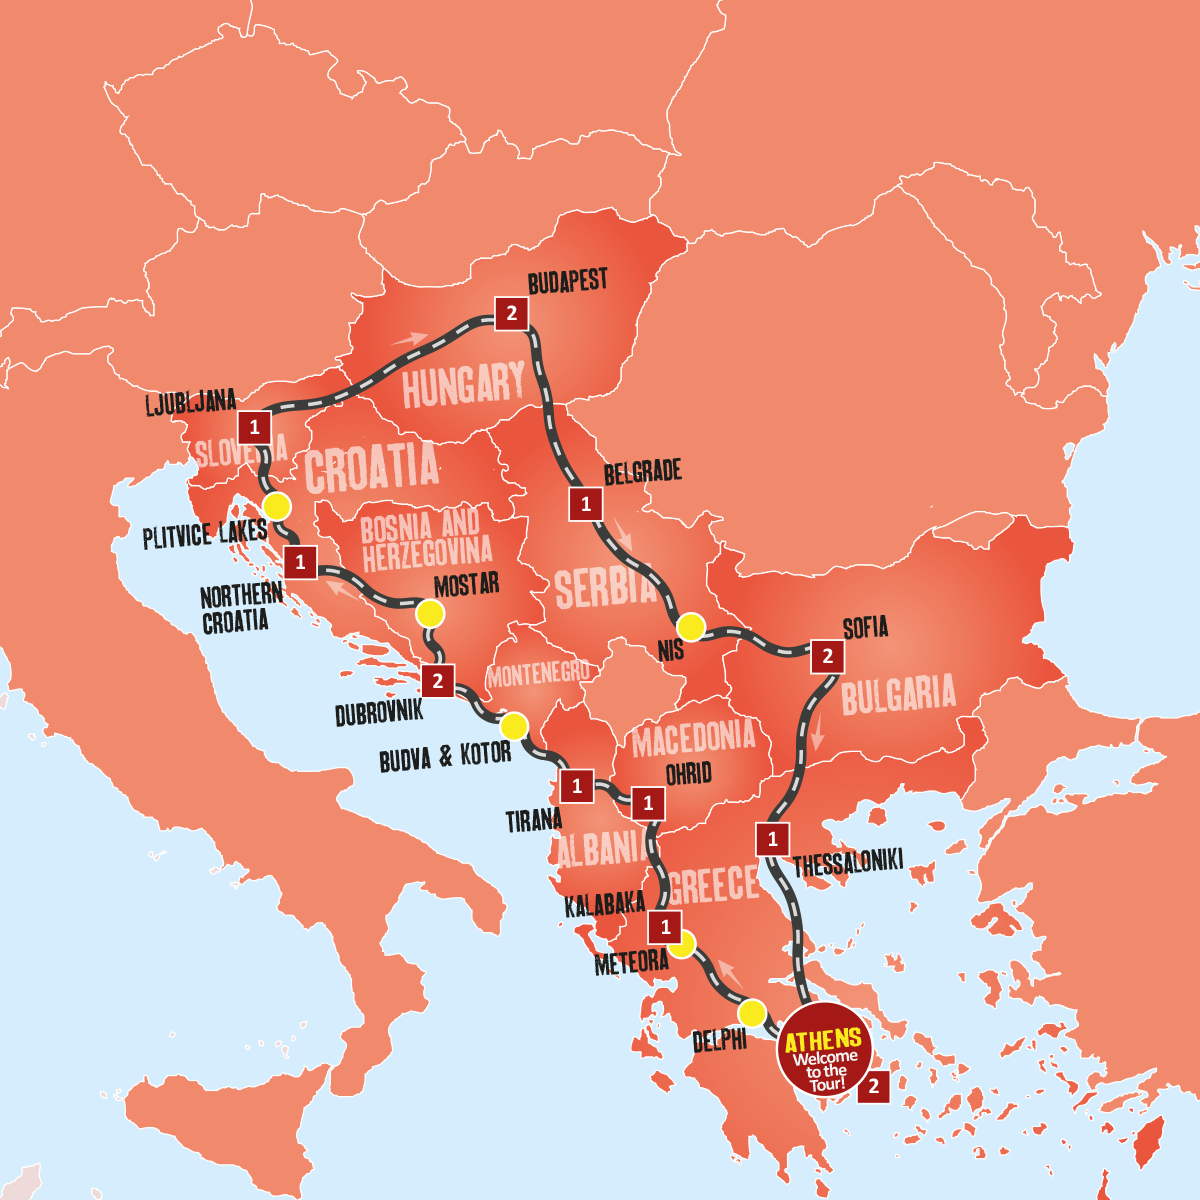 Balkan Explorer Tour Holiday Package Expat Explore Travel